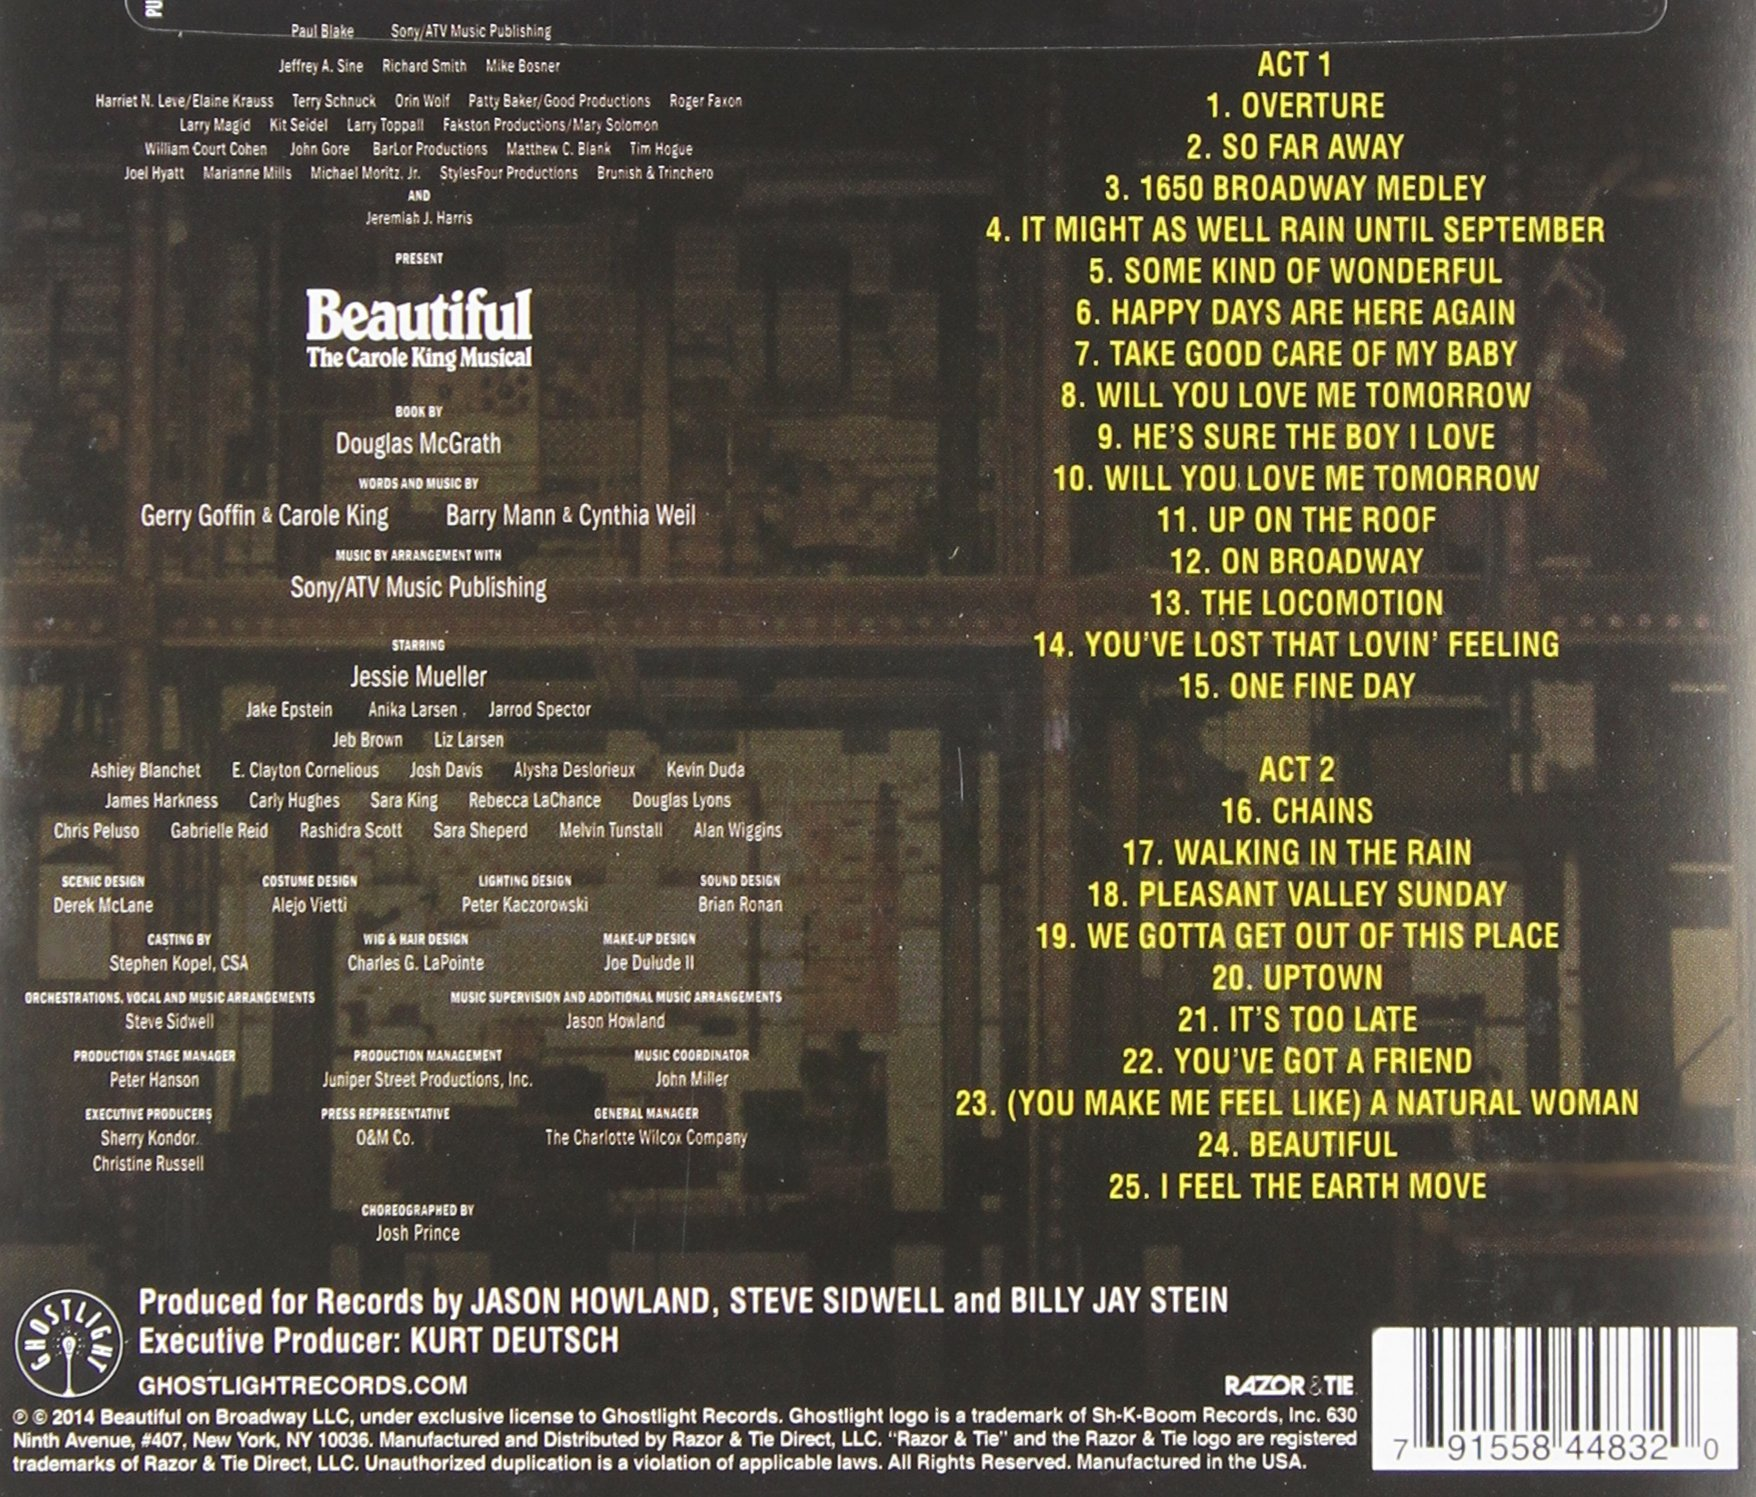 Beautiful: The Carole King Musical by Ghostlight